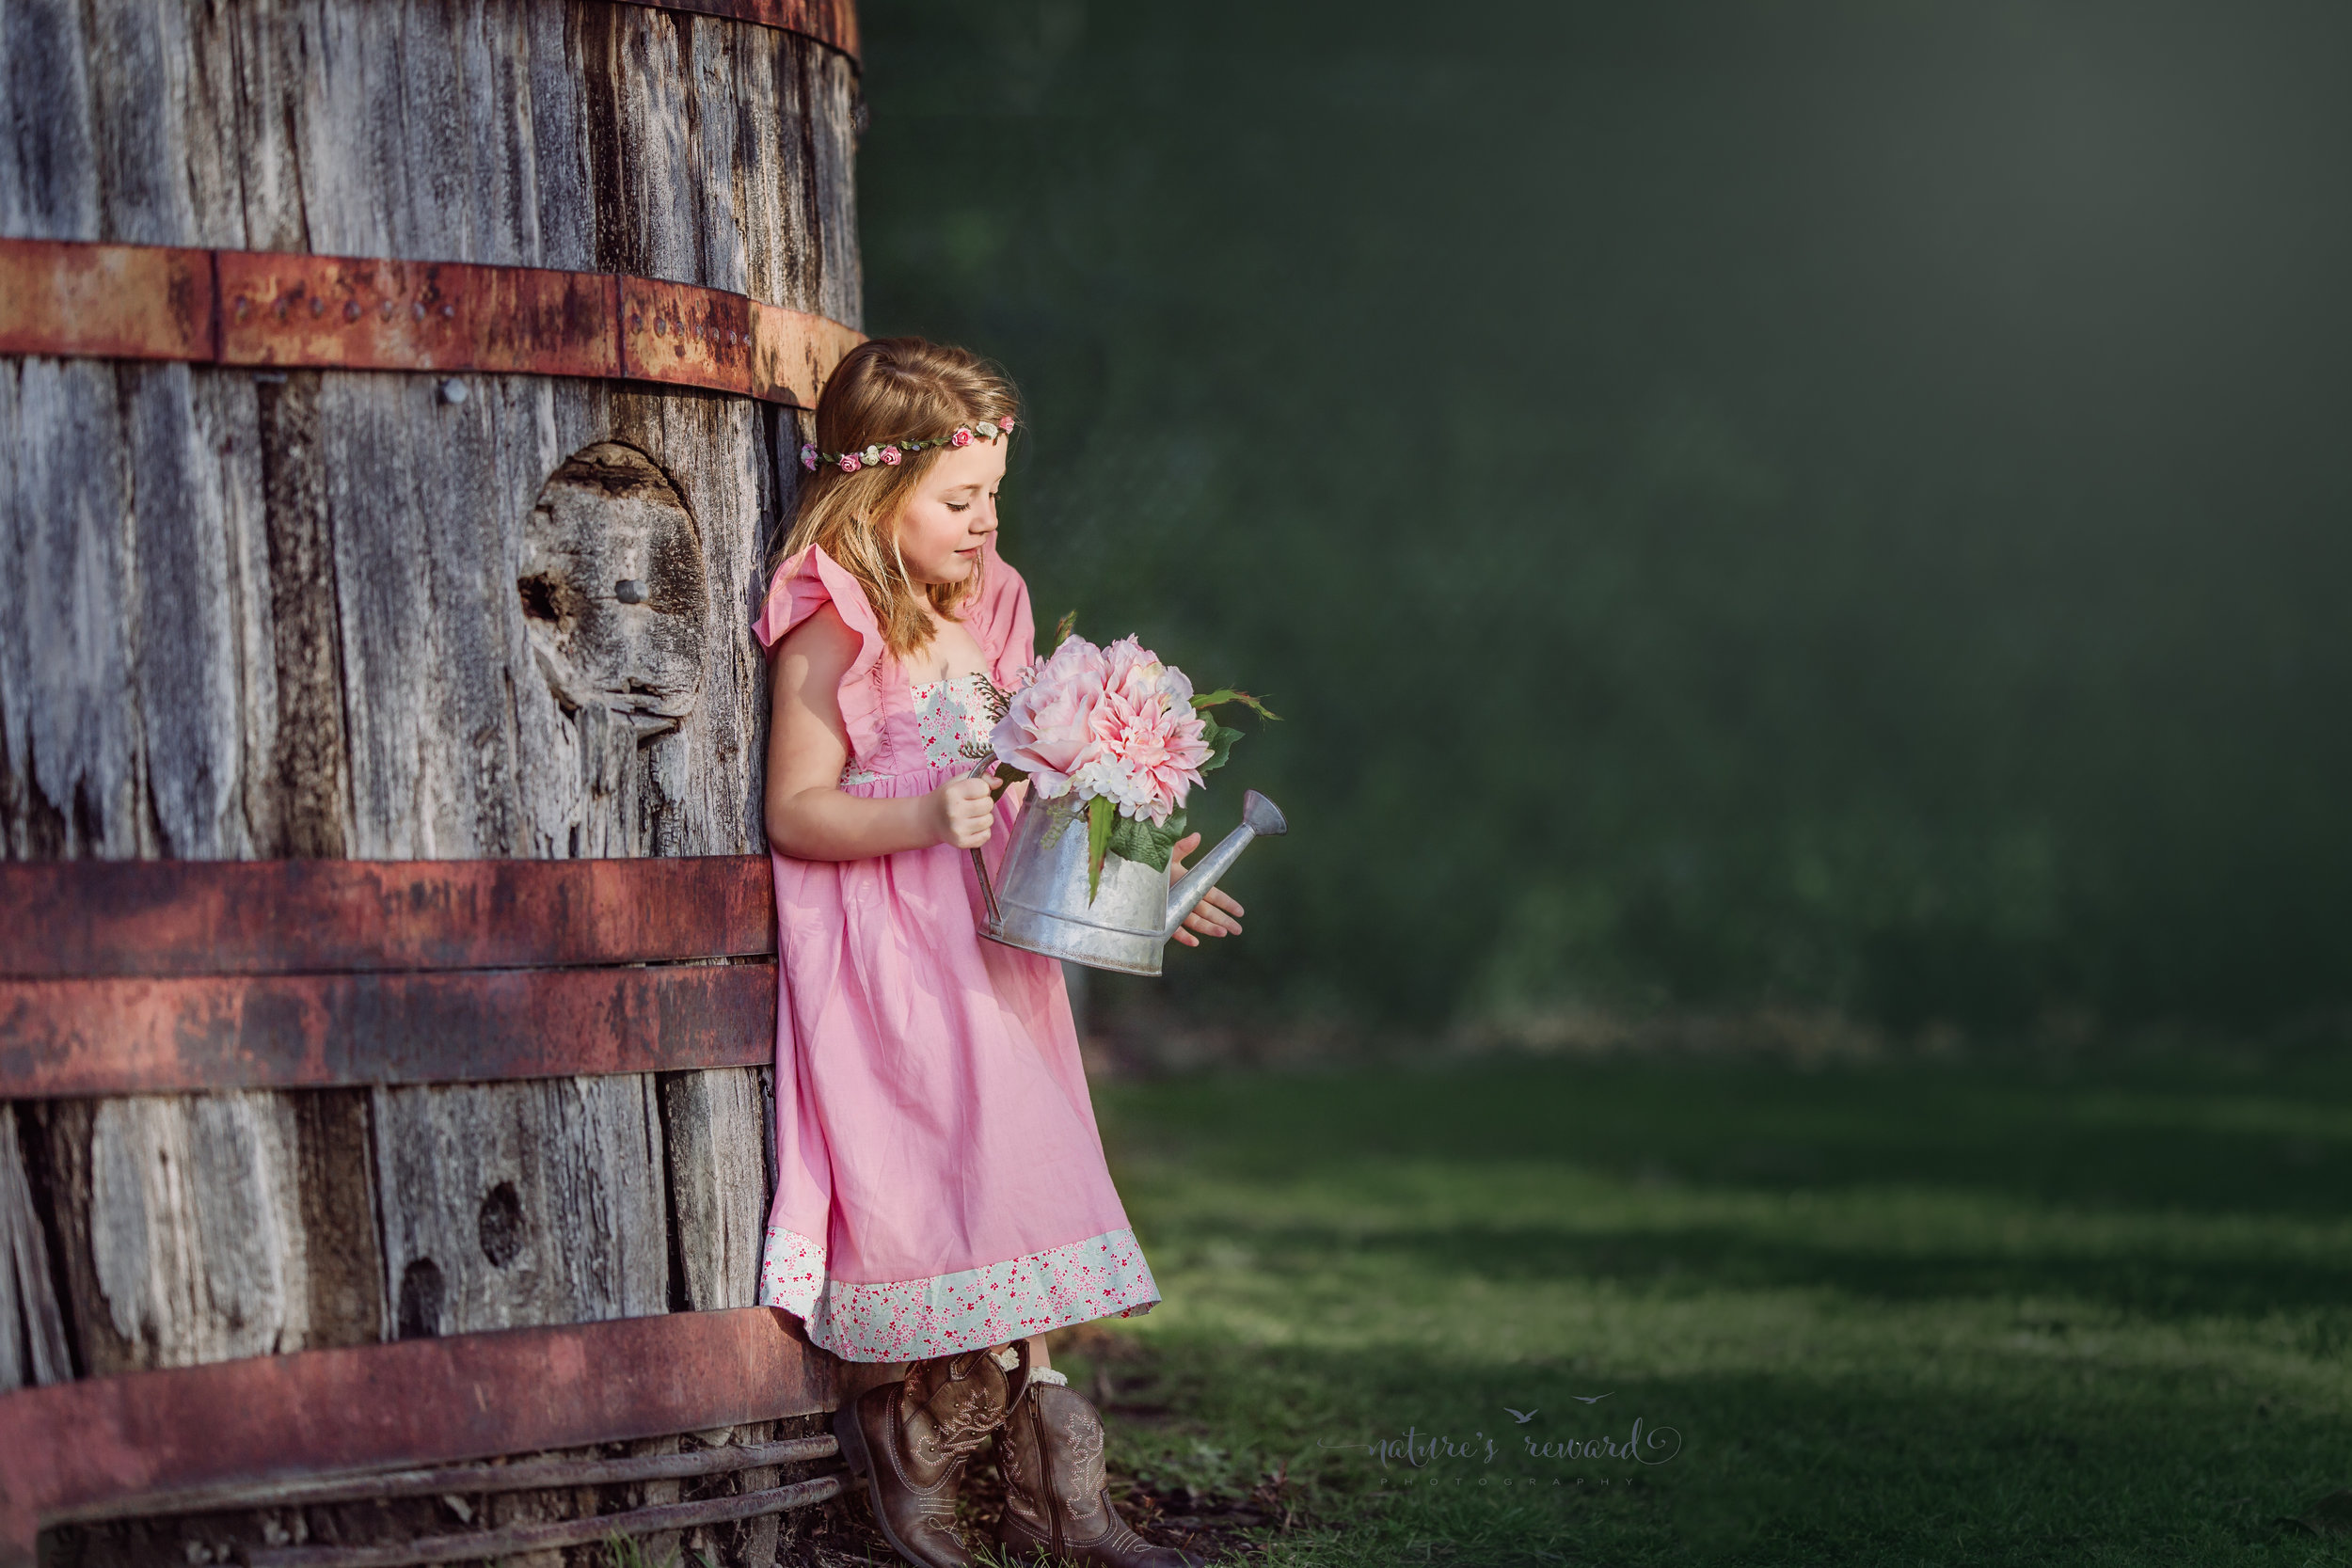 Sweet child in a pink dress holding a watering can and flowers in this nostalgic portrait by Nature's Reward Photography, a Southern California Photographer